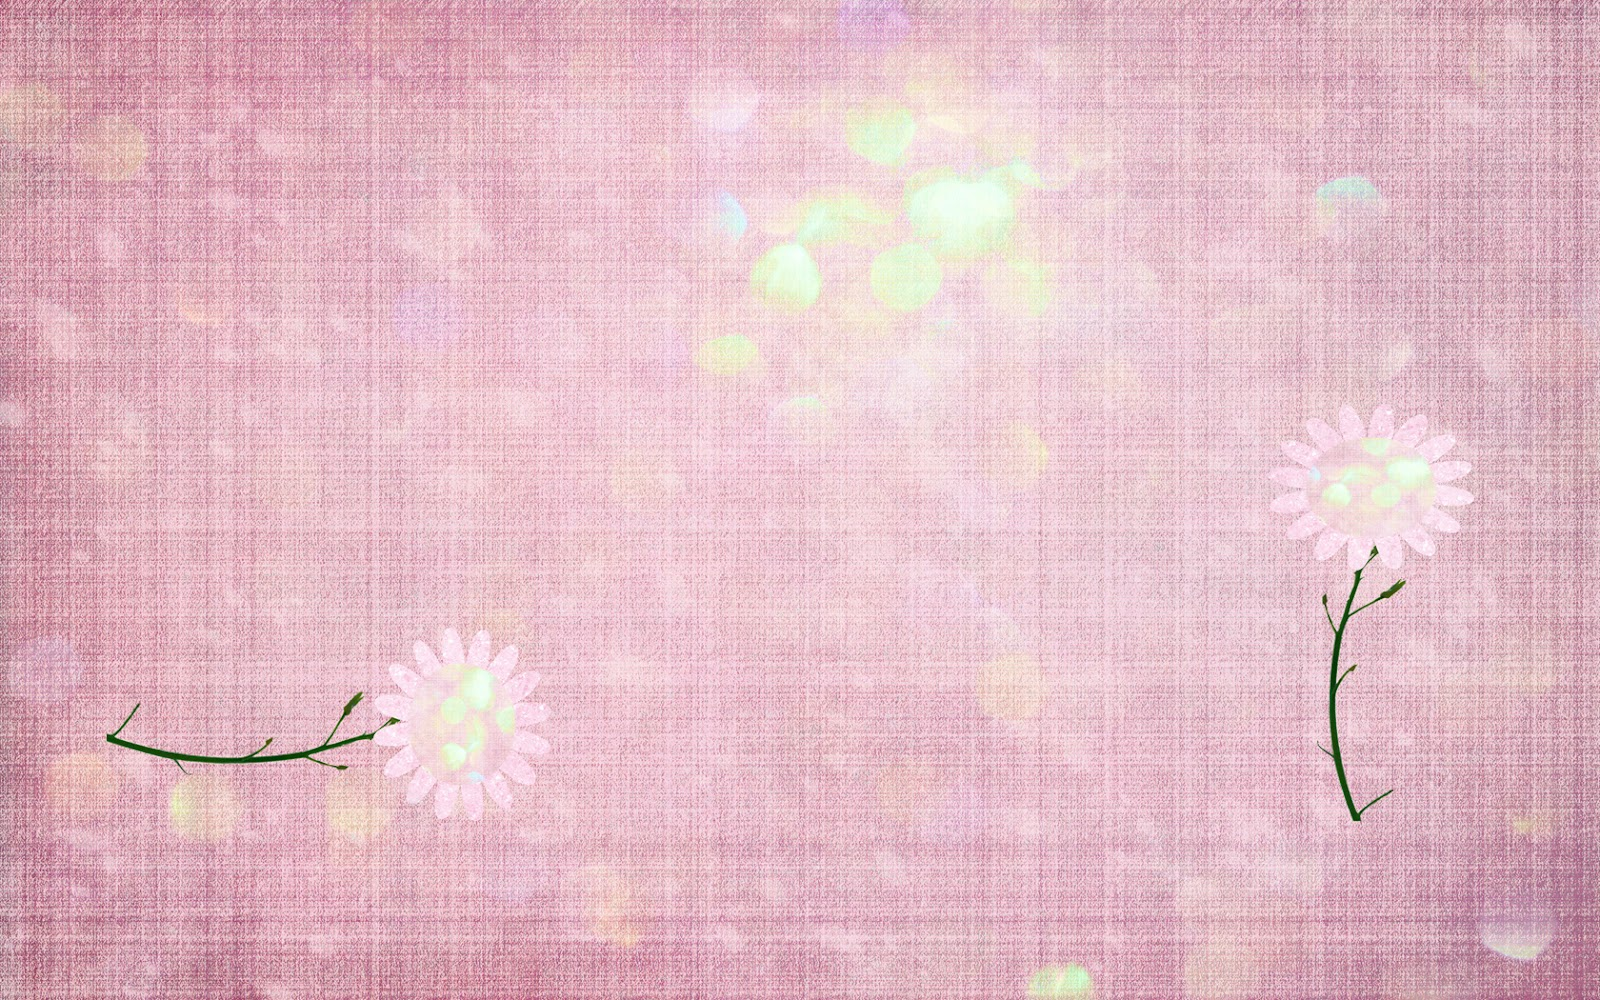 desktop wallpaper tumblr,pink,botany,flower,dandelion,pattern